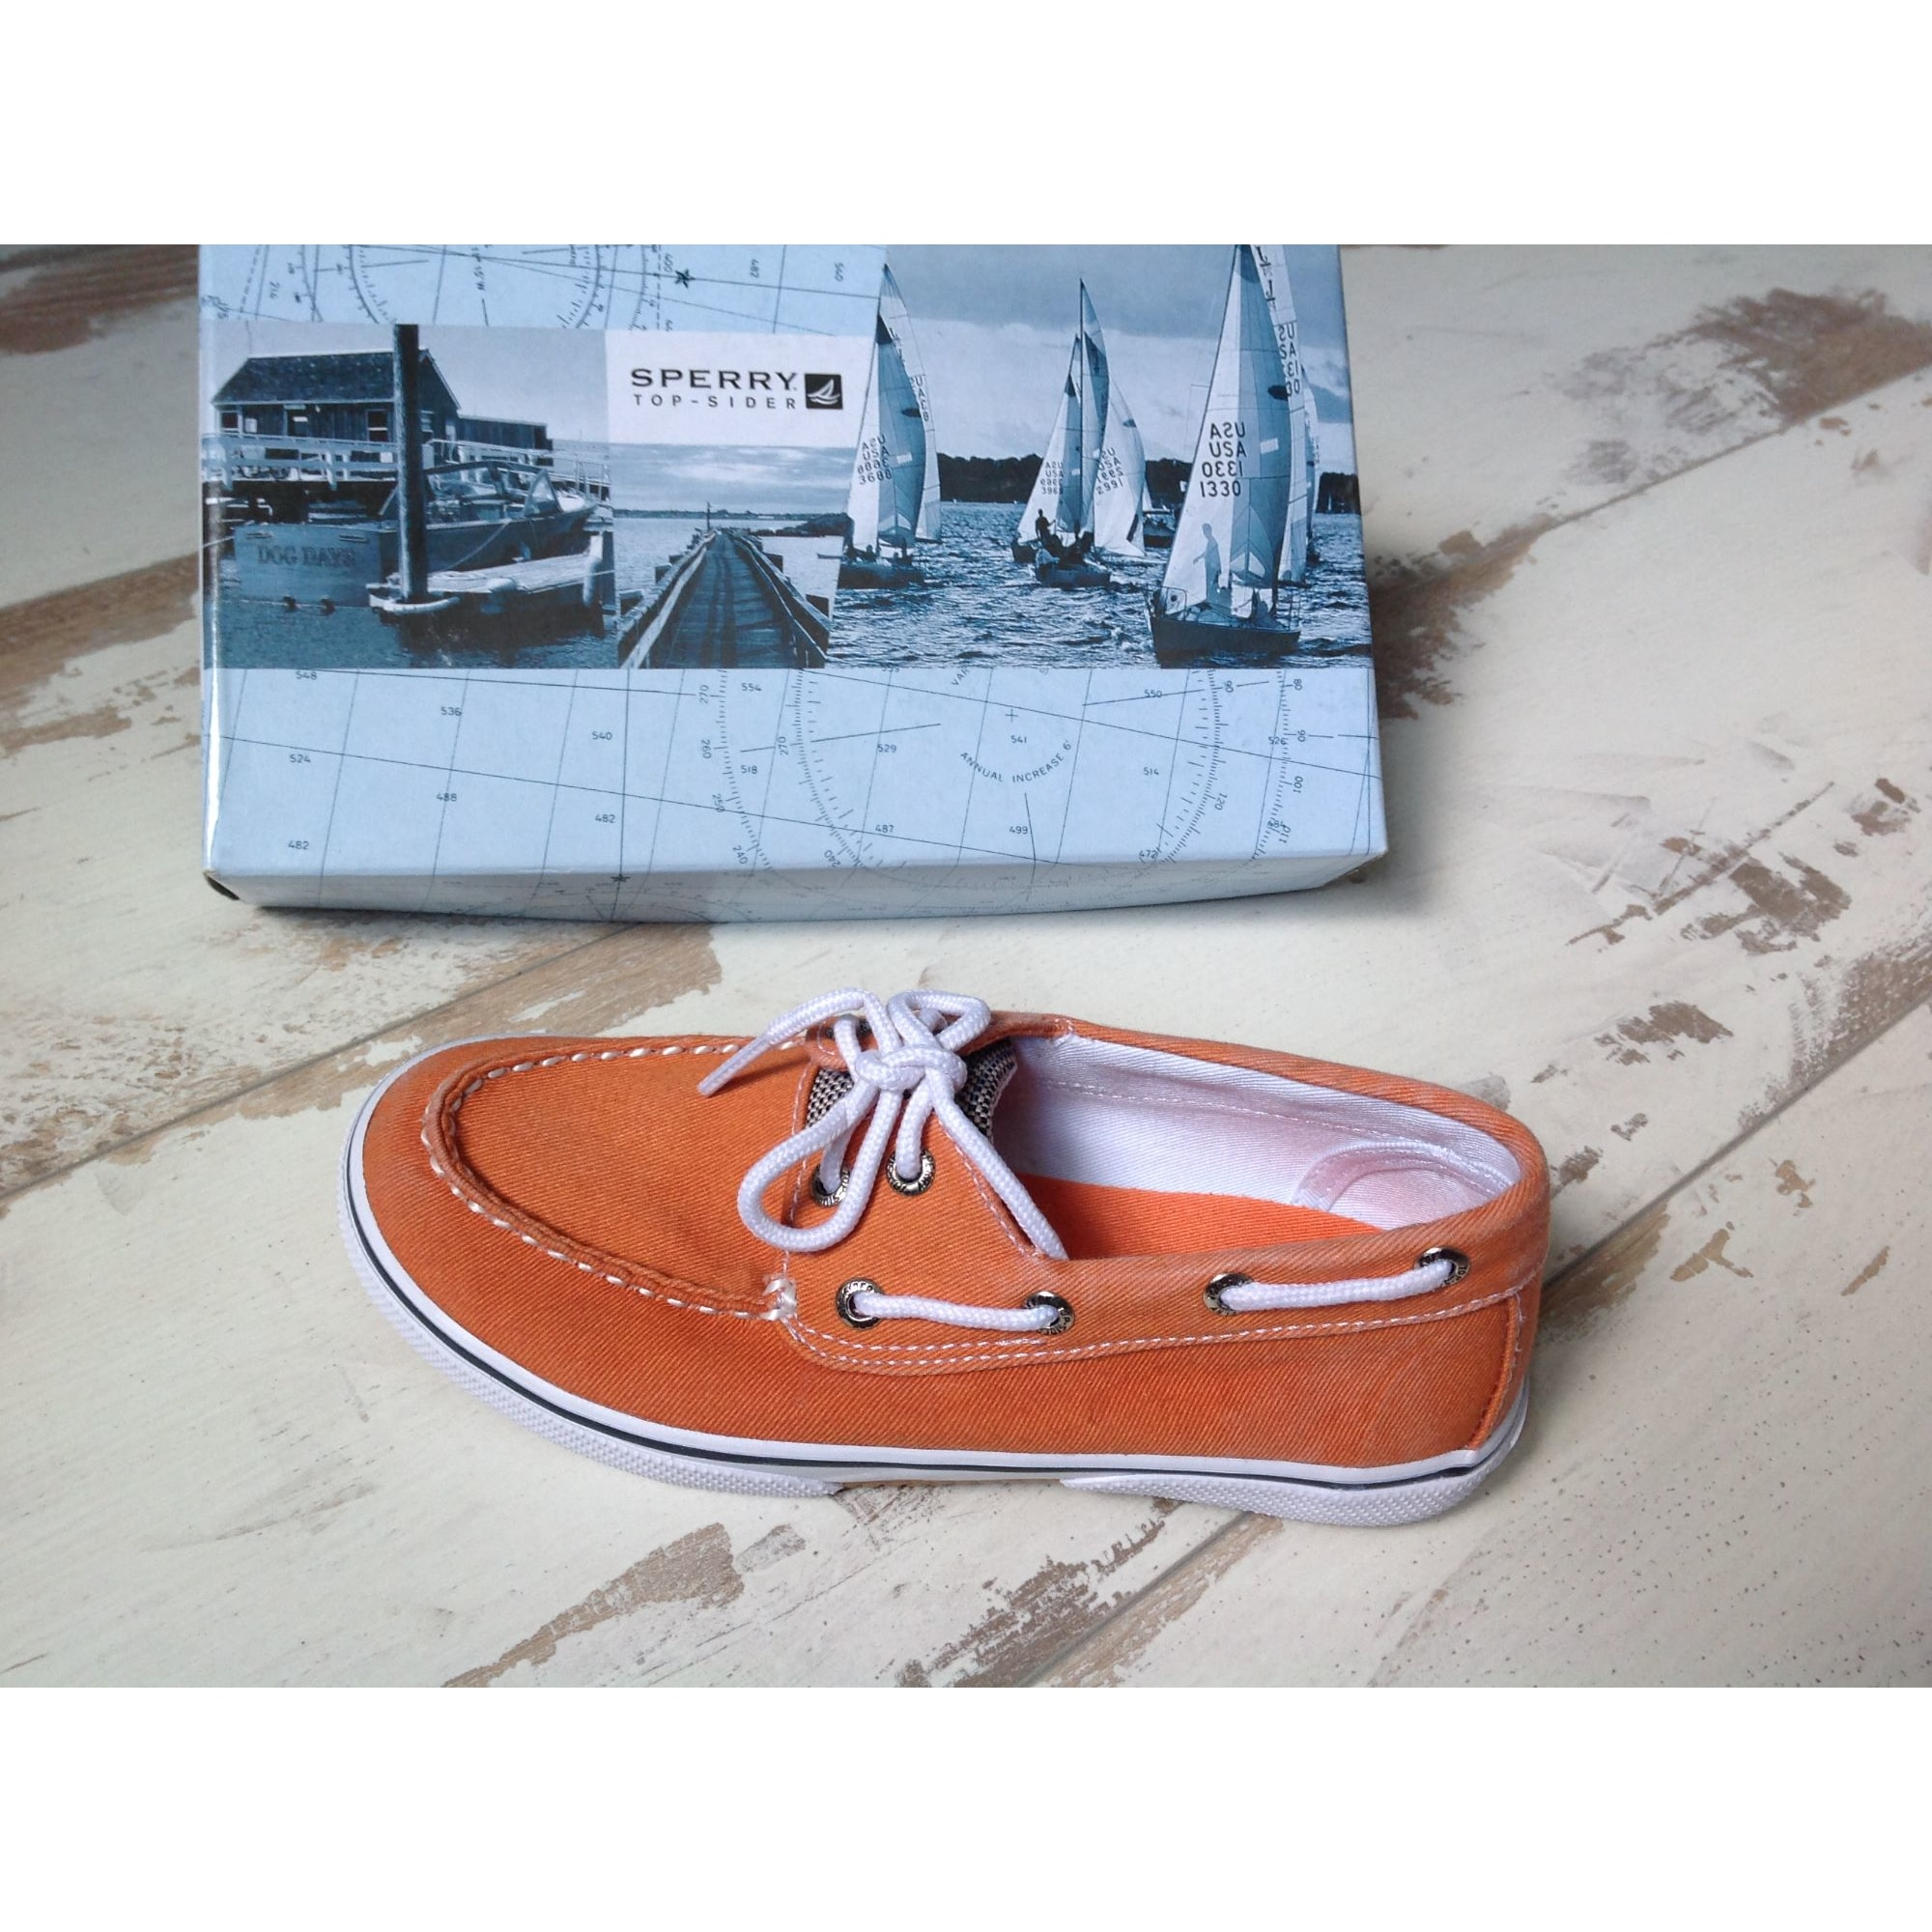 Chaussures à lacets SPERRY TOP-SIDER toile orange 38